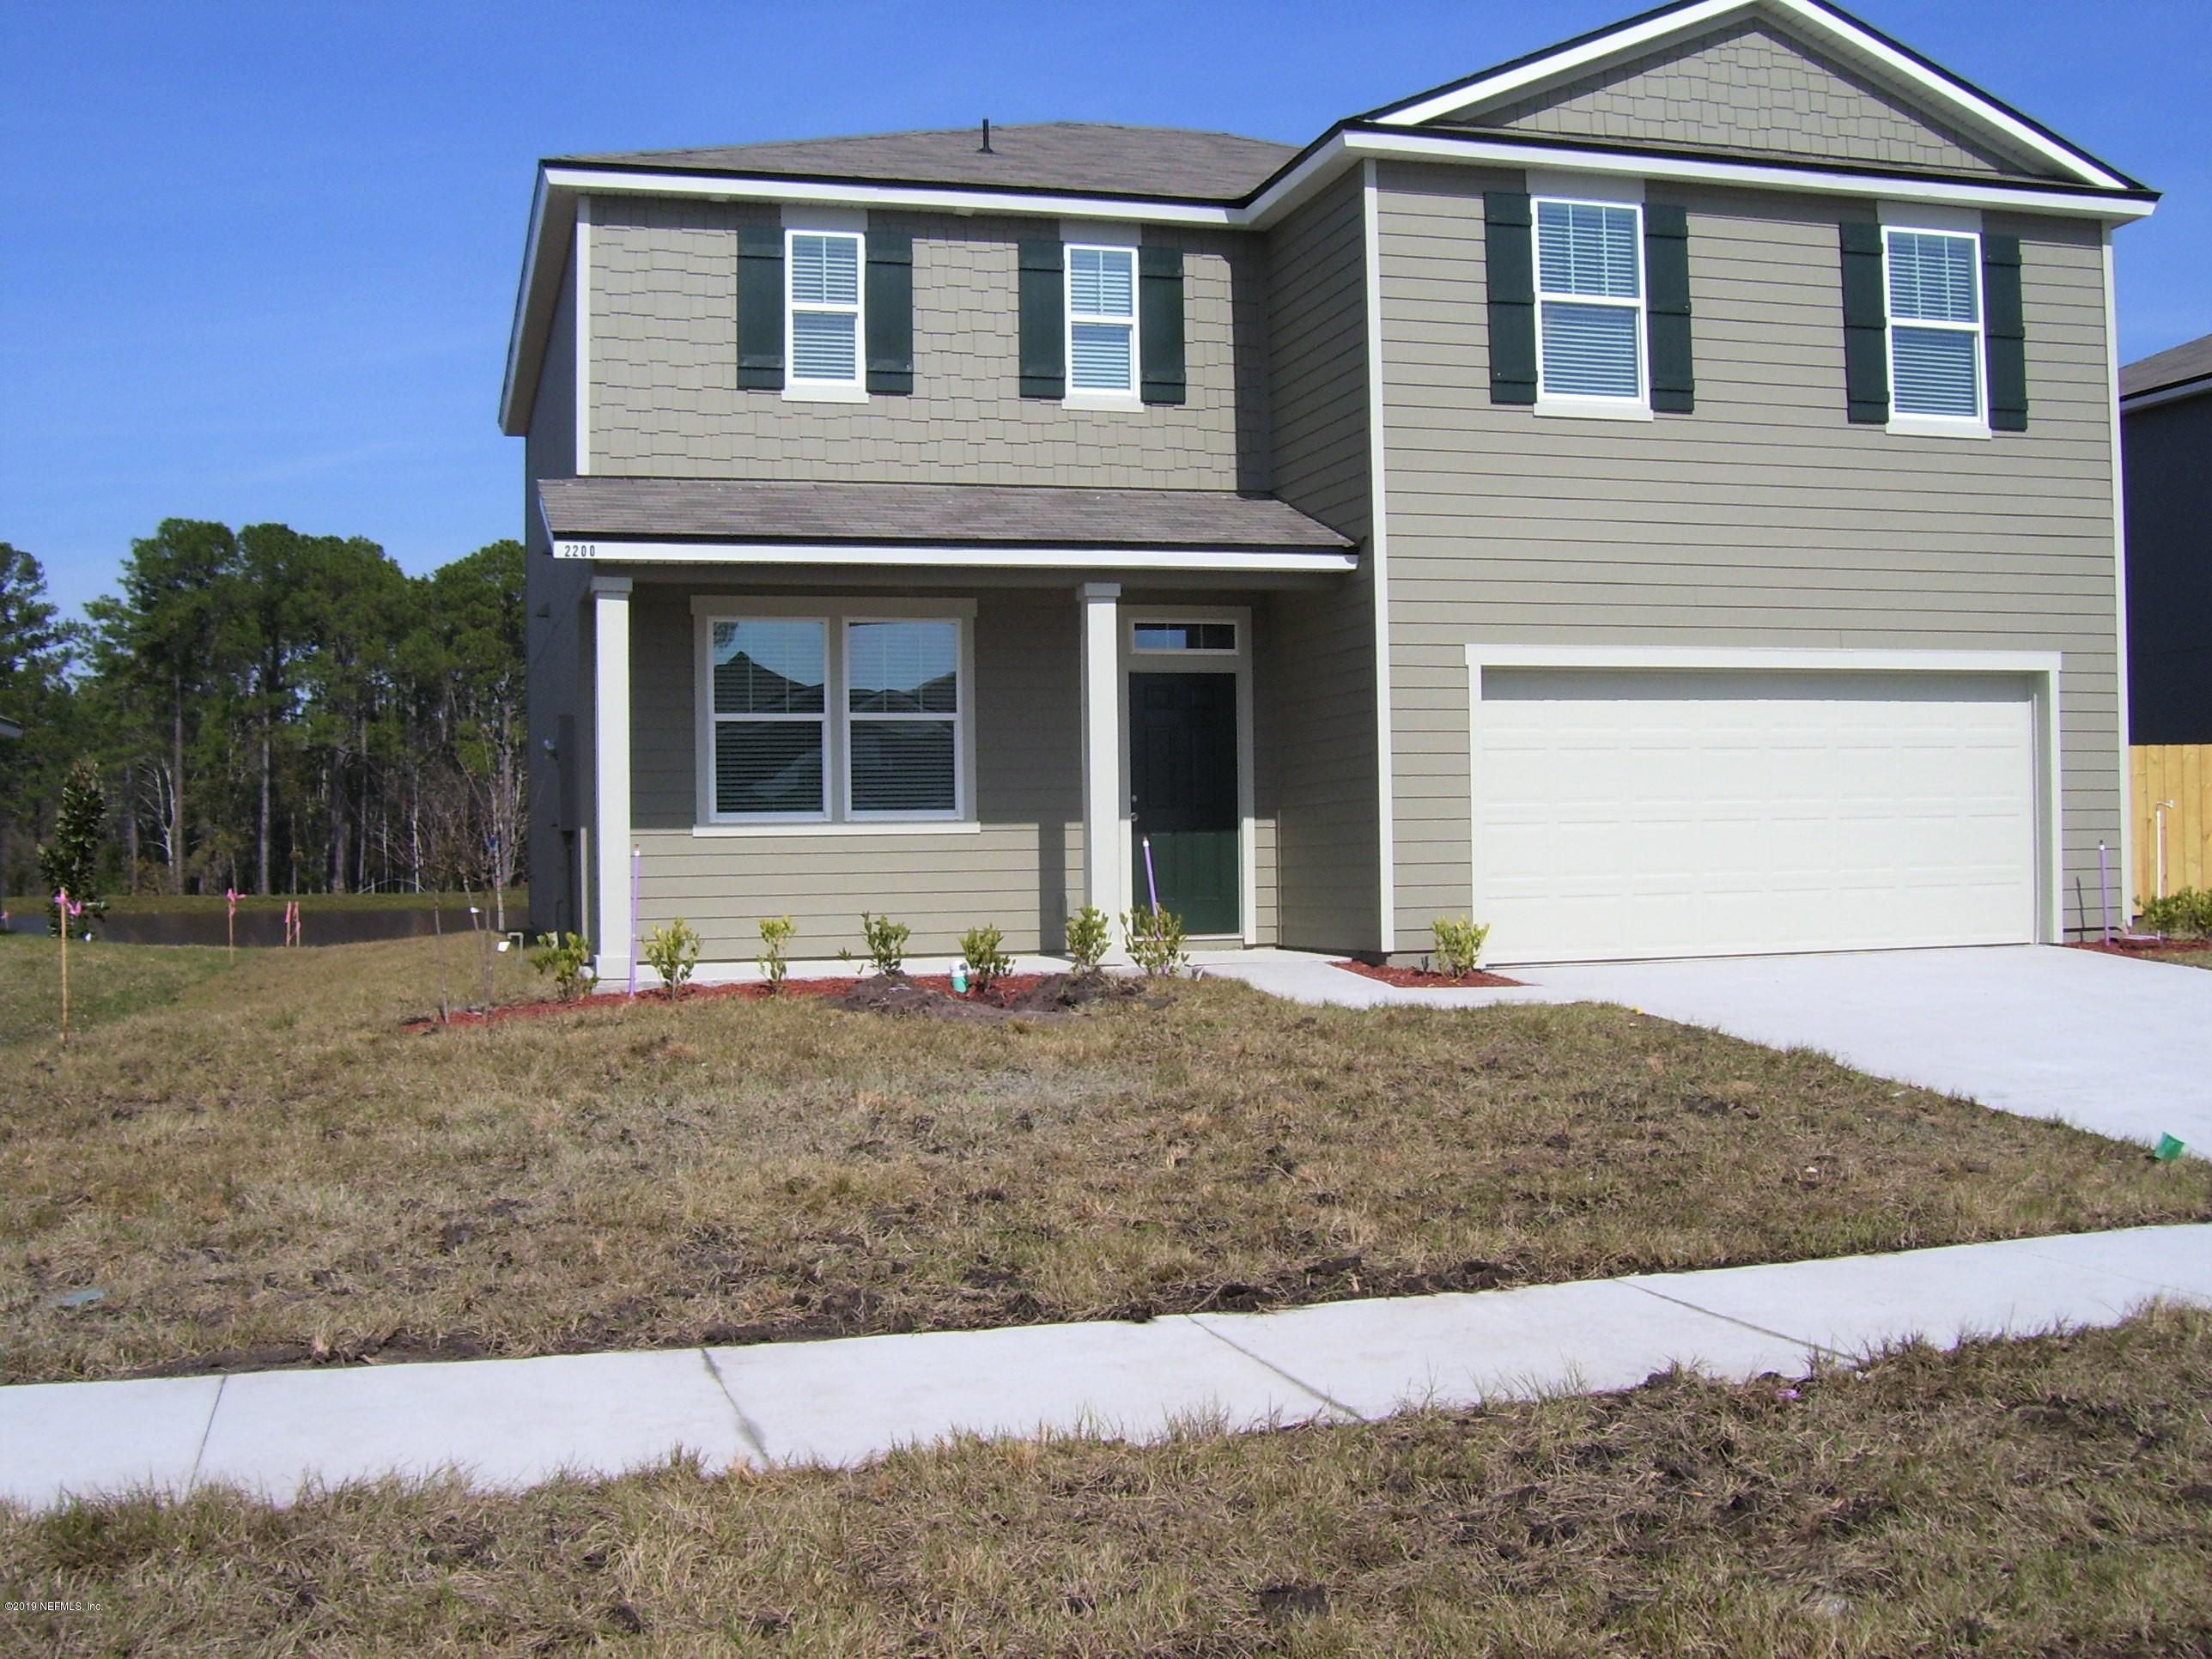 Photo of 2200 PEBBLE POINT, GREEN COVE SPRINGS, FL 32043